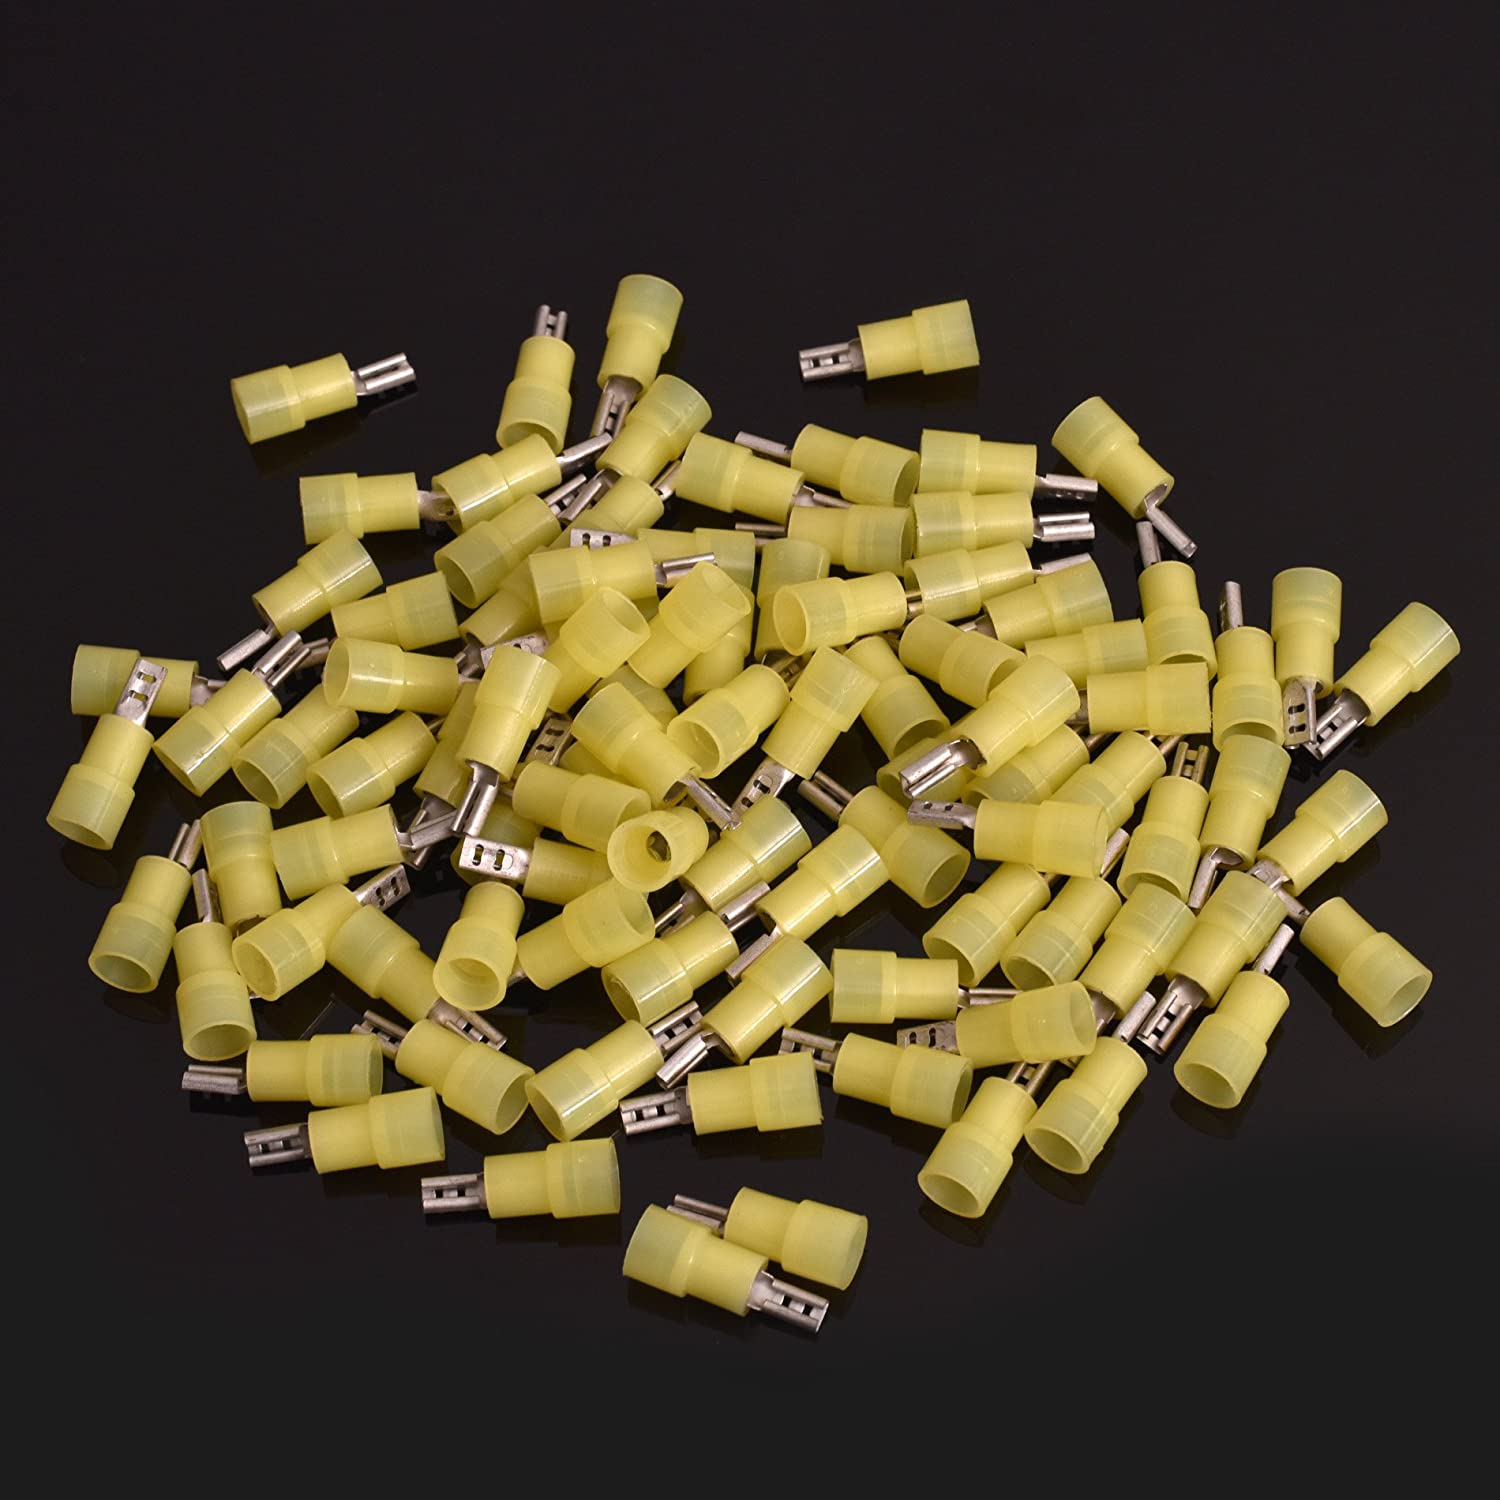 Conext Link QDNF-187Y100 Nylon Quick Disconnect Terminal Female 100 Pack 0.187, Yellow 12-10 Gauge